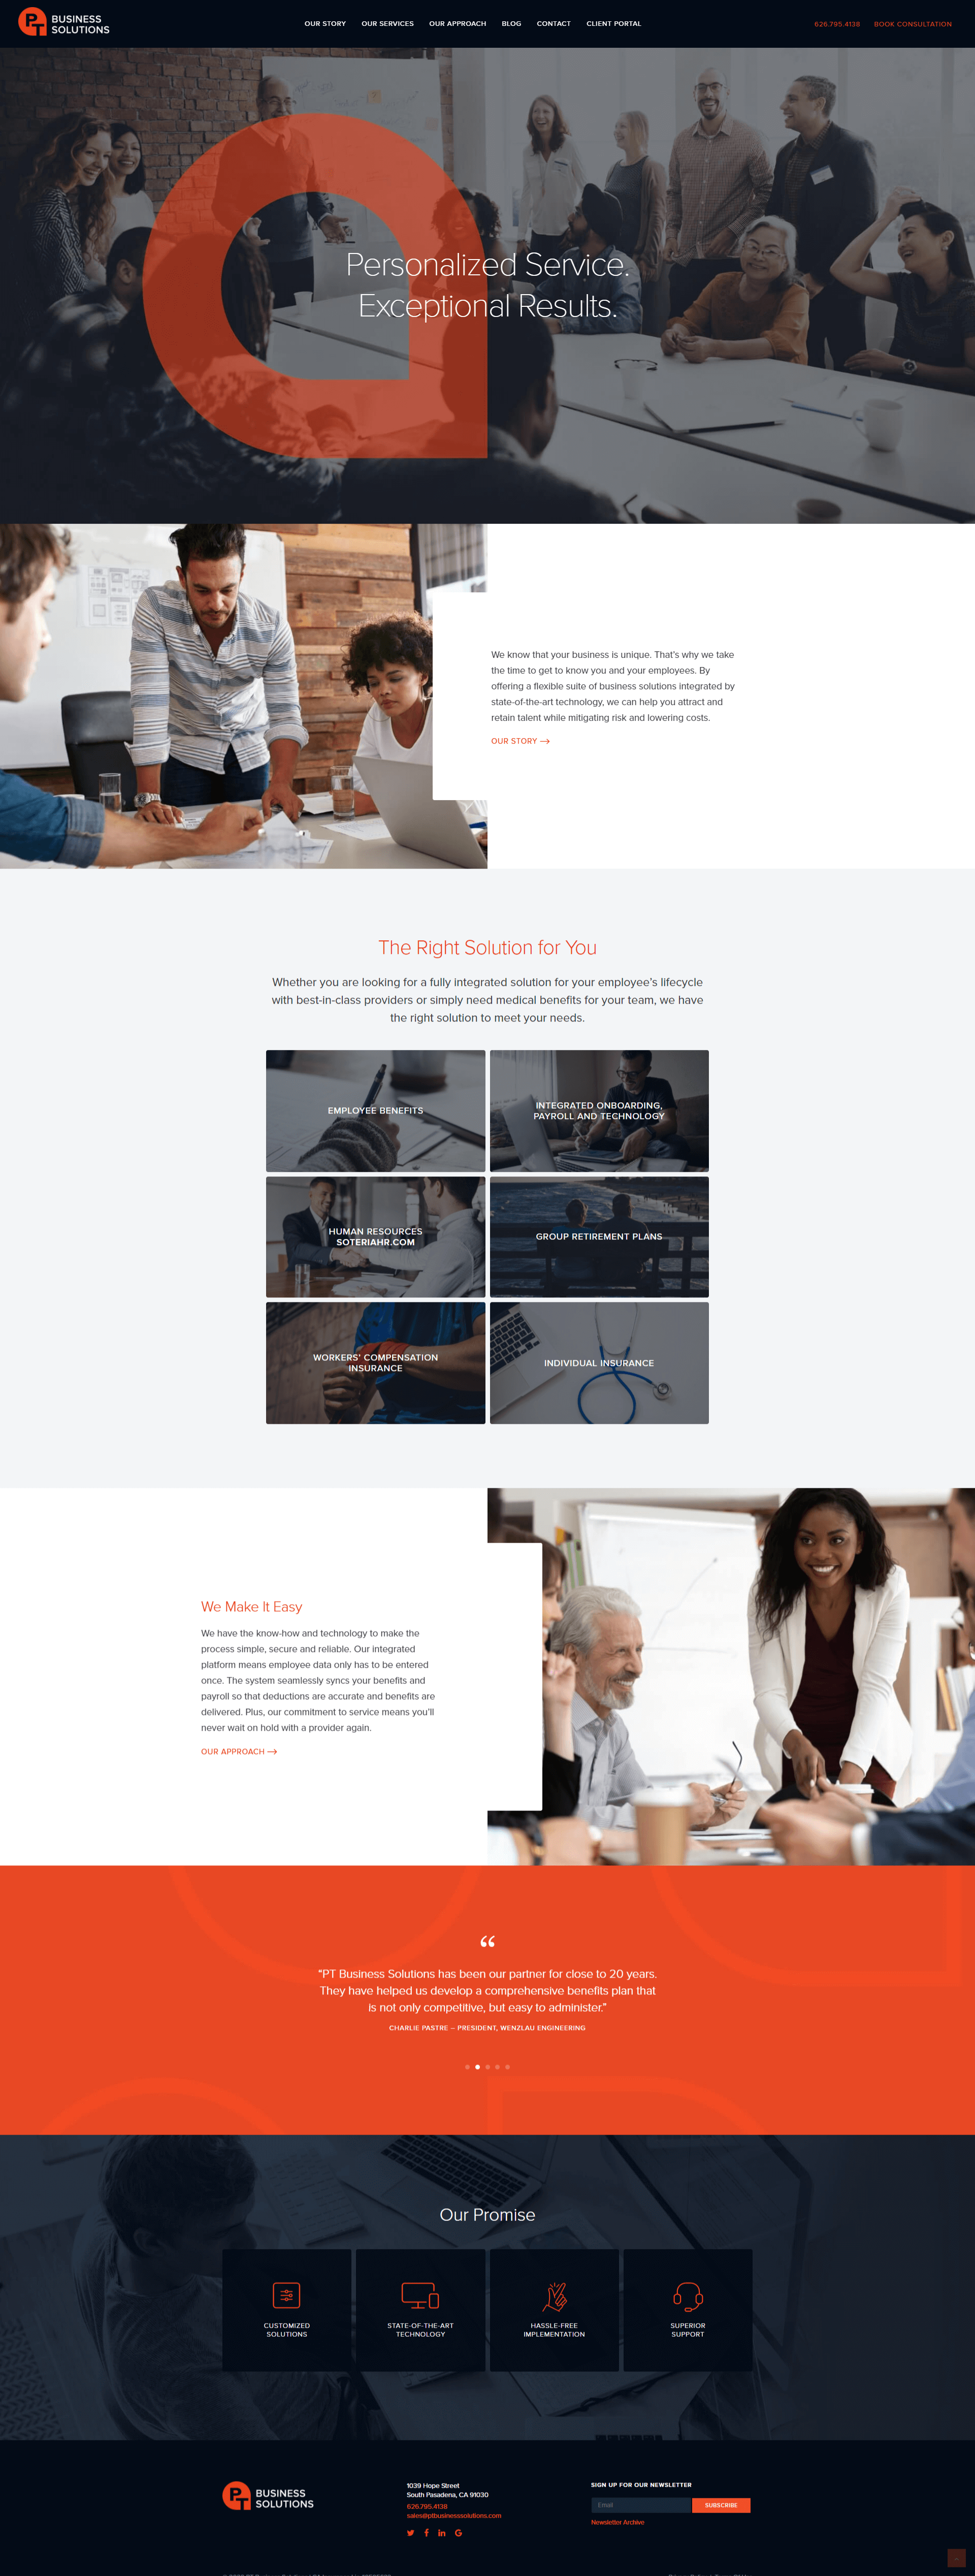 Professional Services Company Website